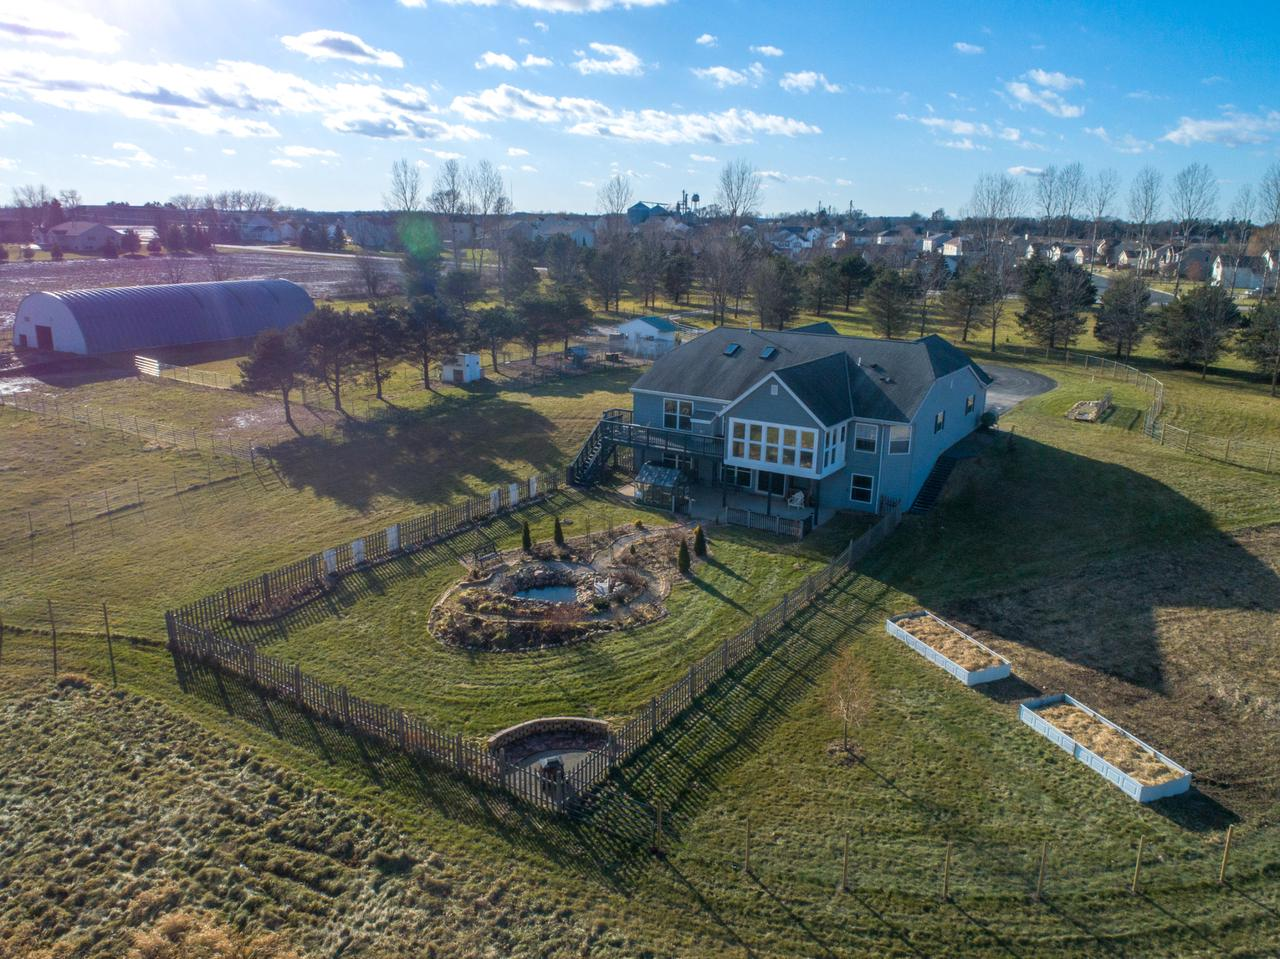 Covenant Acres Farm. Beautiful open concept home with walk-out basement on over 20 acres. 5,000 sq.ft. barn w/heated tack room, stalls, electric, water and second septic system.  2 addtl outbuildings, greenhouse. 2 ponds, 4 natural springs, hay field, trails, fire pits, perennial gardens, fruit trees, garden plot with raised beds. Home features skylights, vaulted ceilings, leaded glass doors, Moroccan stone tile and wine cellar. Stunning countryside views . Multiple entertainment areas. Extensive updates throughout home incl low watt and LED lighting,  finished lower level w/kitchenette suitable for in-law suite. Bring your horses, chickens and other livestock to live on this very well maintained property and enjoy mother nature at its best. Great hunting grounds. 1 Year Home Warranty incl